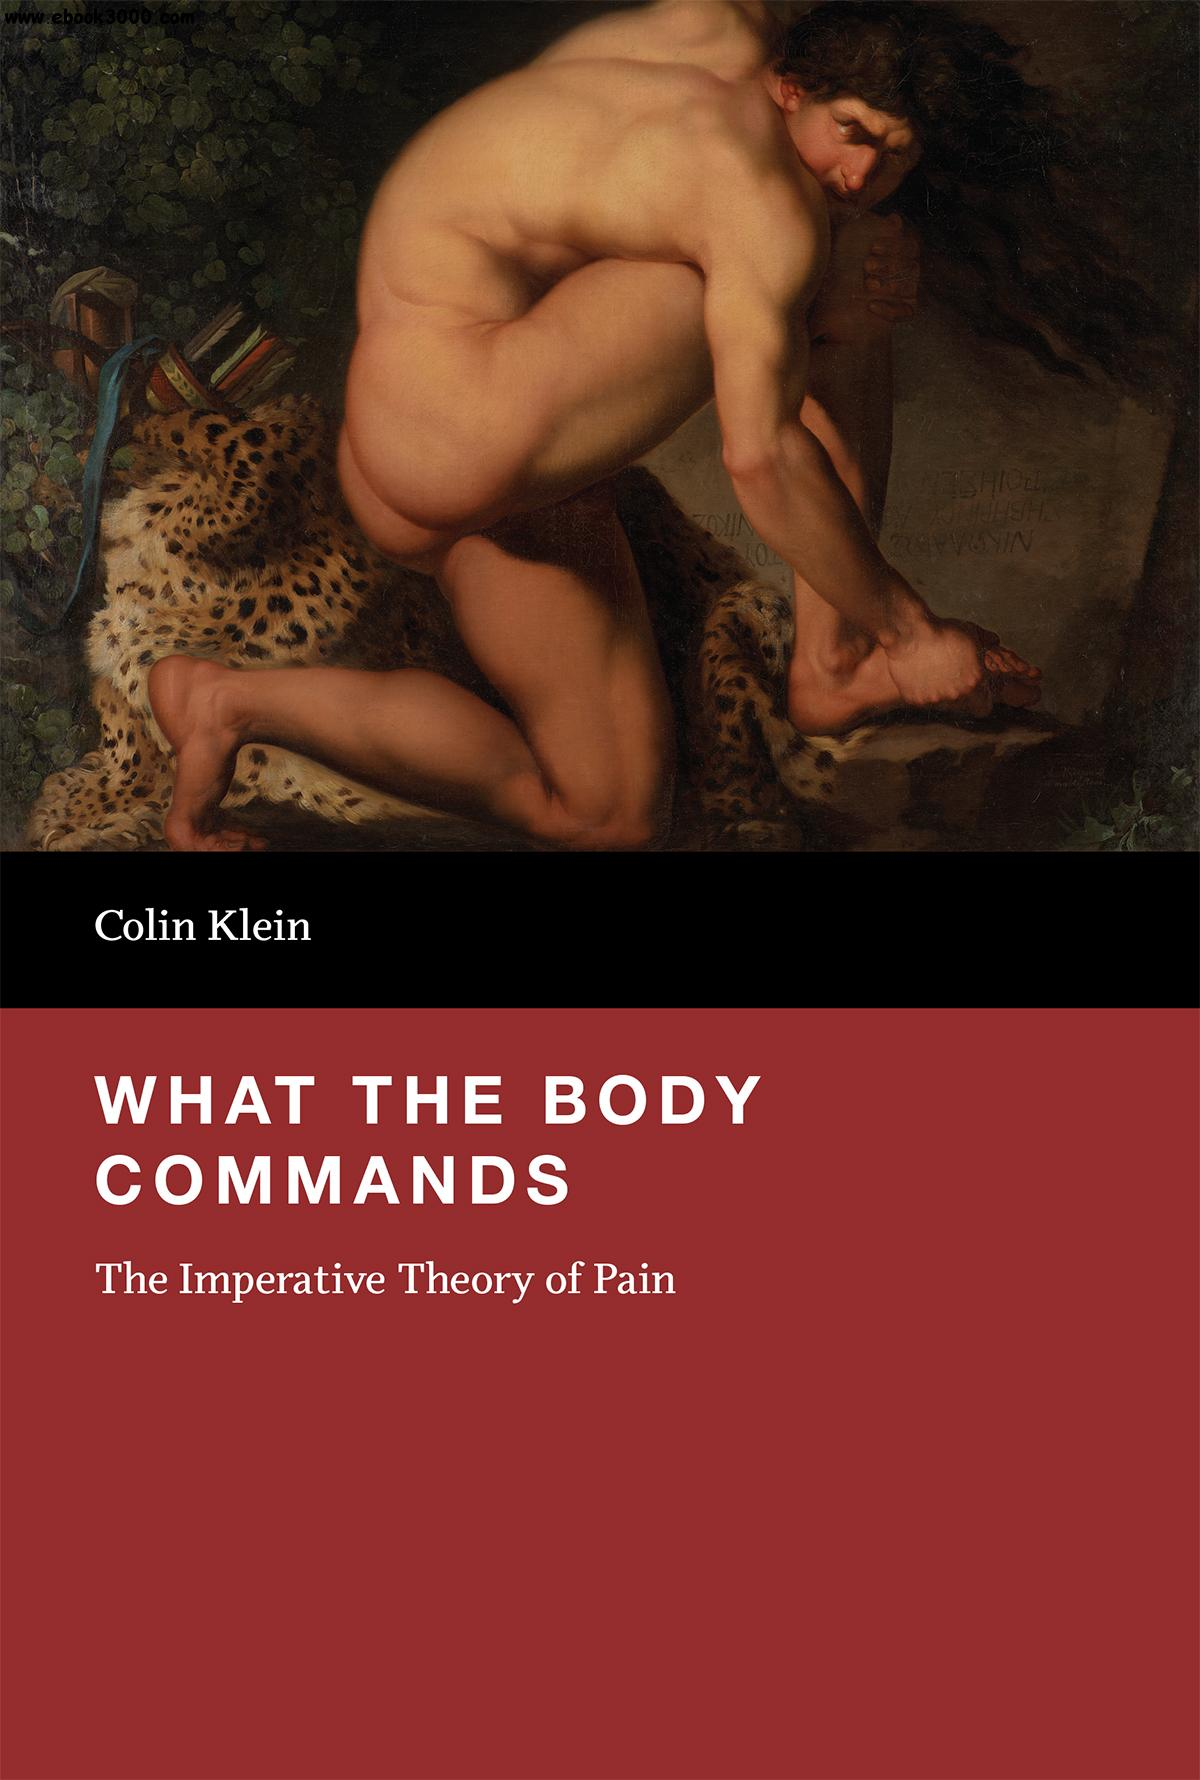 What the Body Commands: The Imperative Theory of Pain